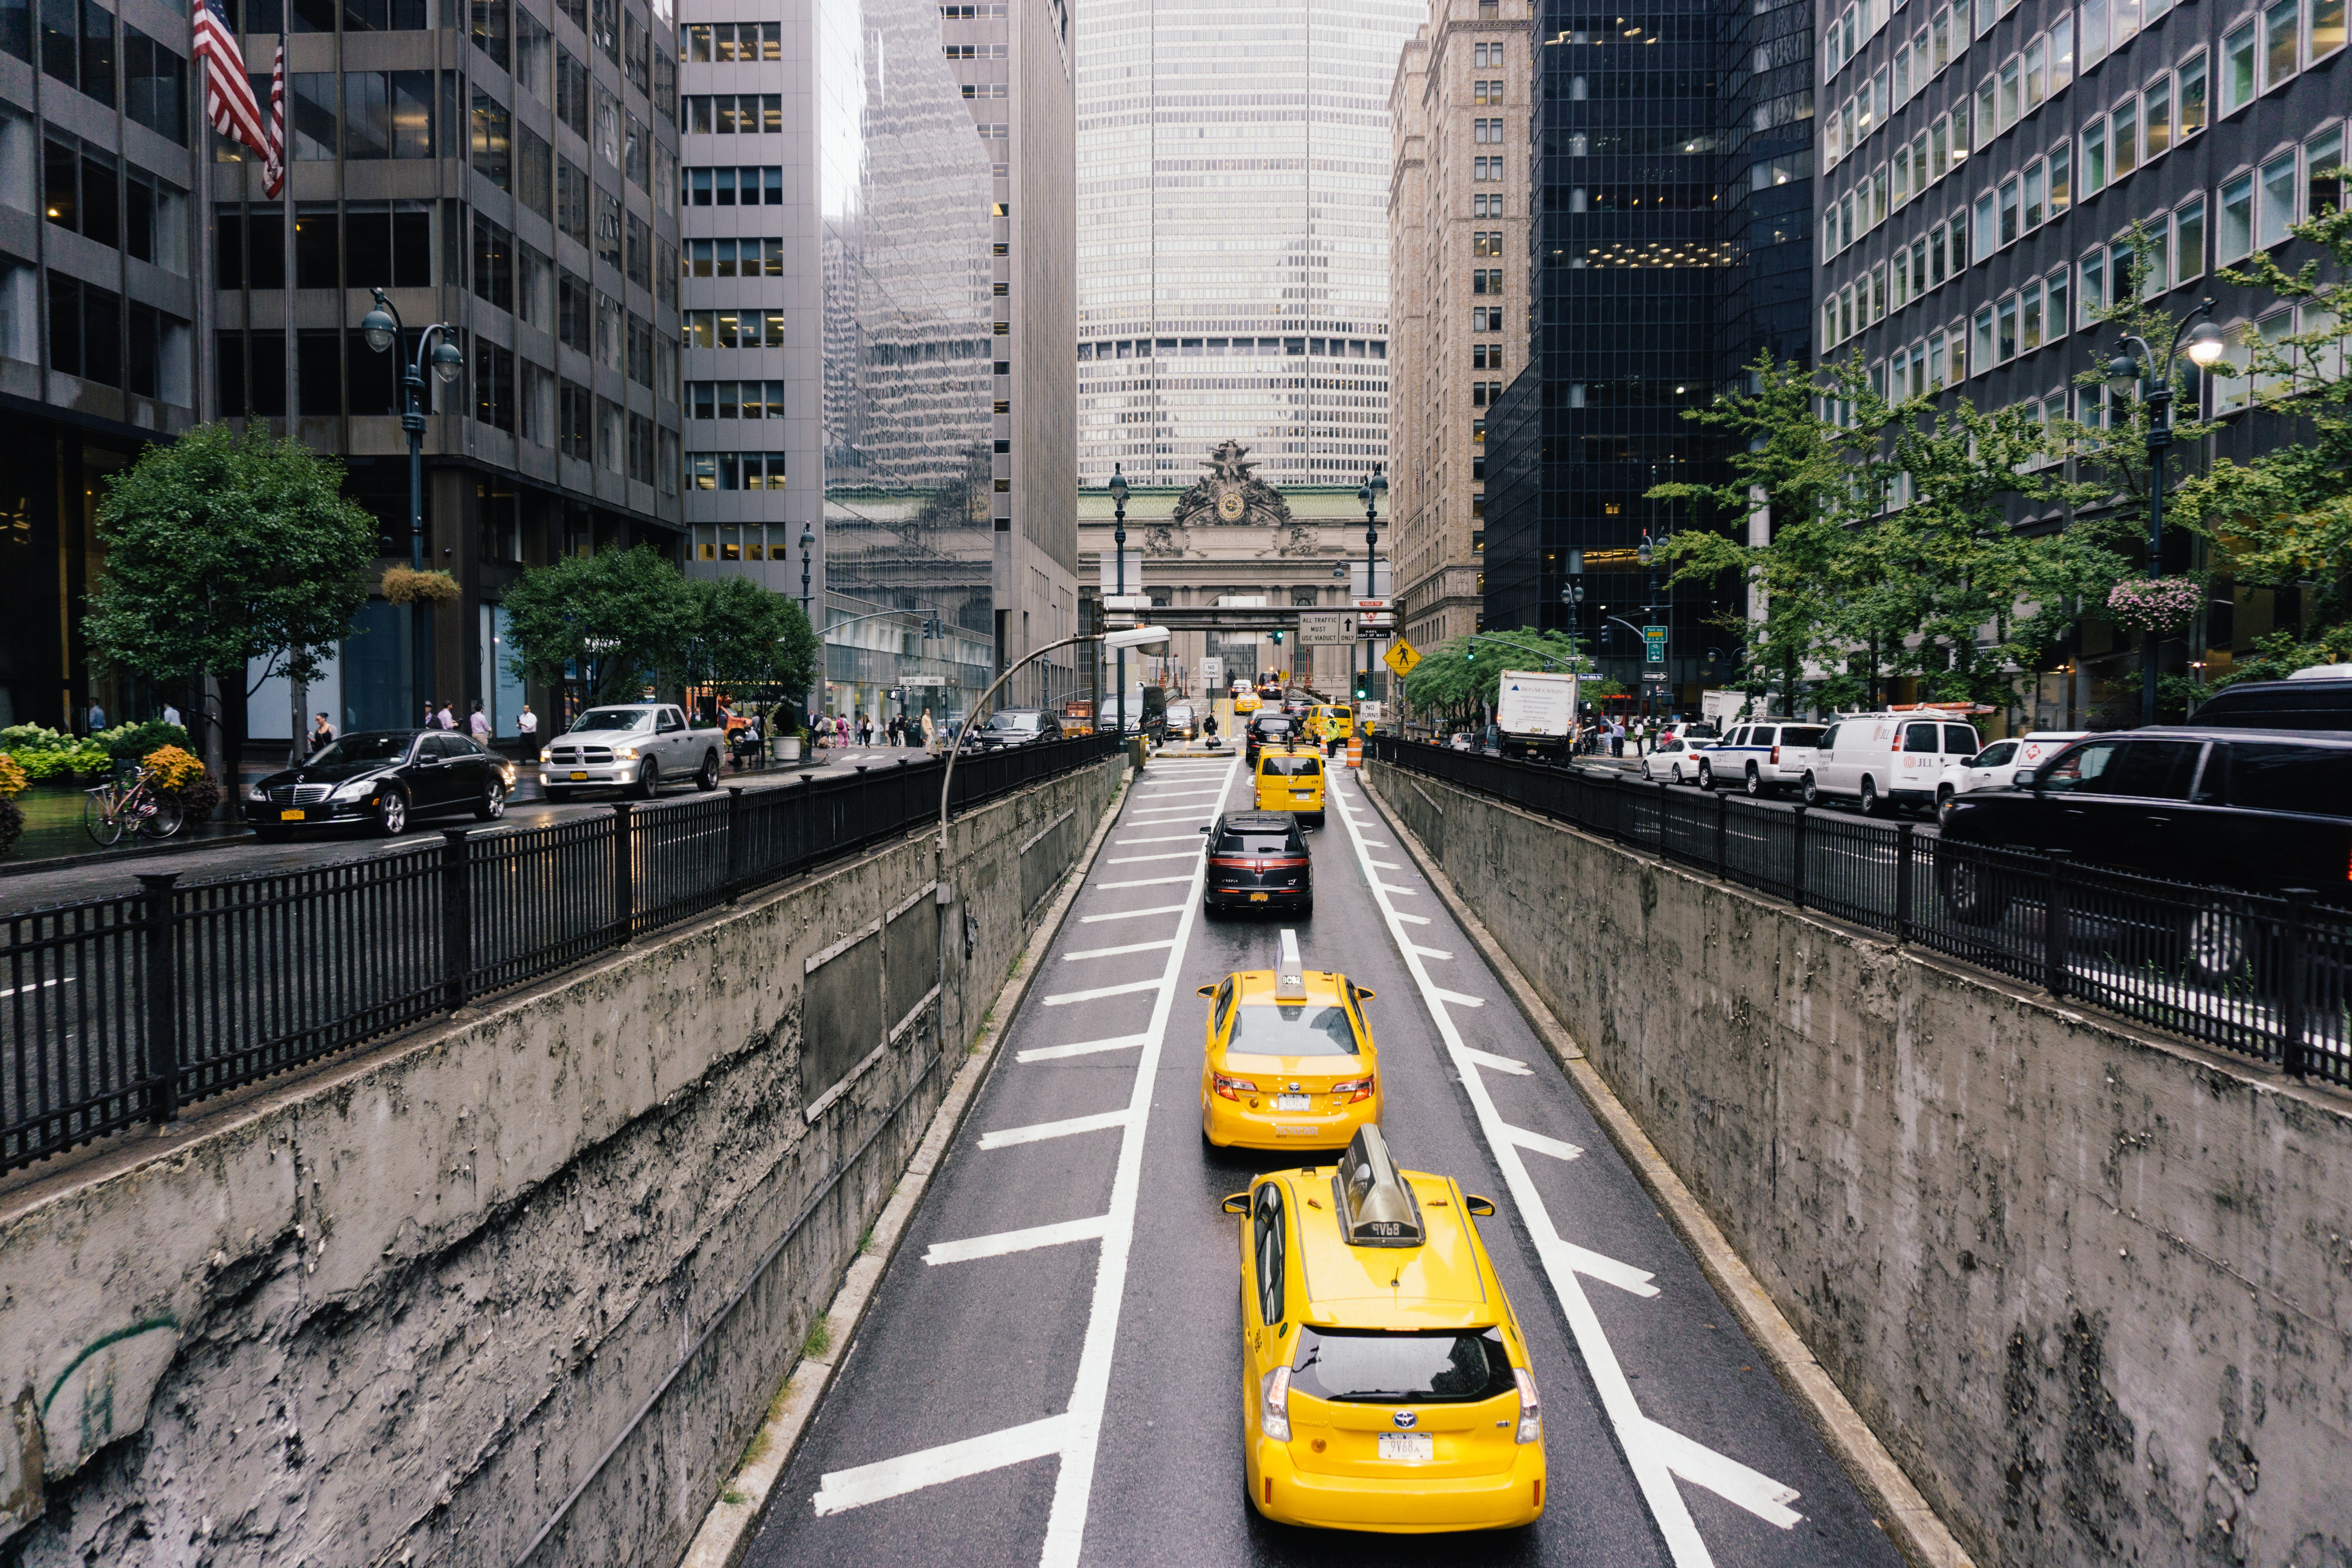 Line of yellow taxi cabs drive down a busy city street